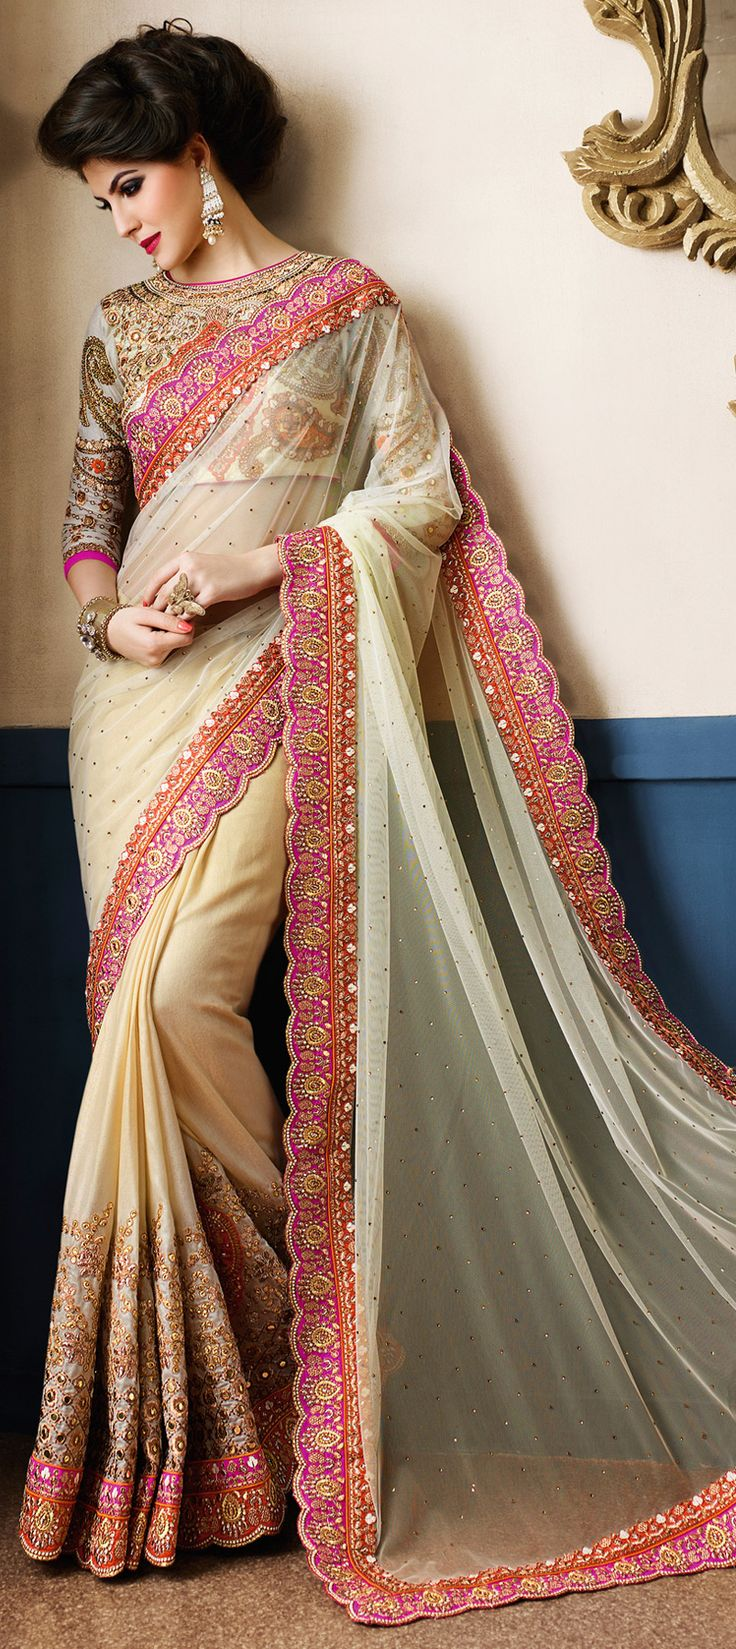 Sheer Elegance - Beige Embroidered Saree with Mirror Work!  191019: Beige and Brown color family Bridal Wedding Sarees, Party Wear Sarees with matching unstitched blouse. www.indianweddingsaree.com